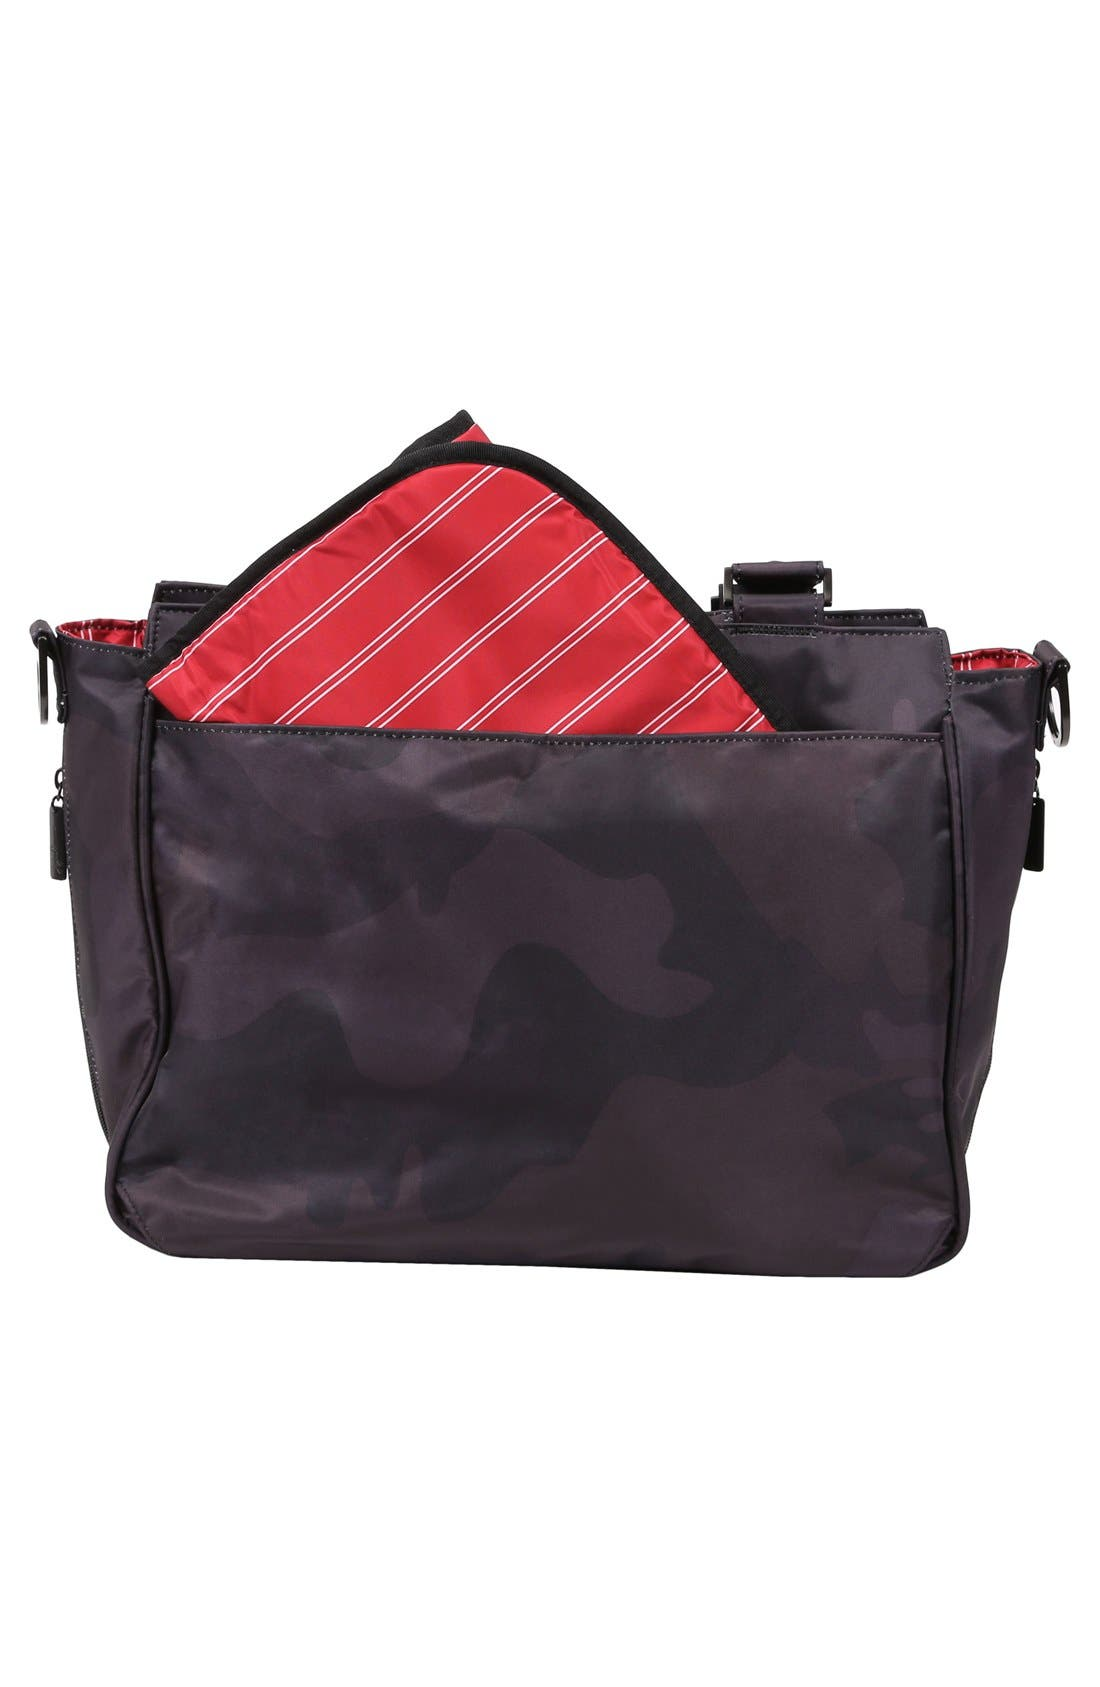 'Be Classy - Onyx Collection' Messenger Diaper Bag,                             Alternate thumbnail 4, color,                             Black Ops